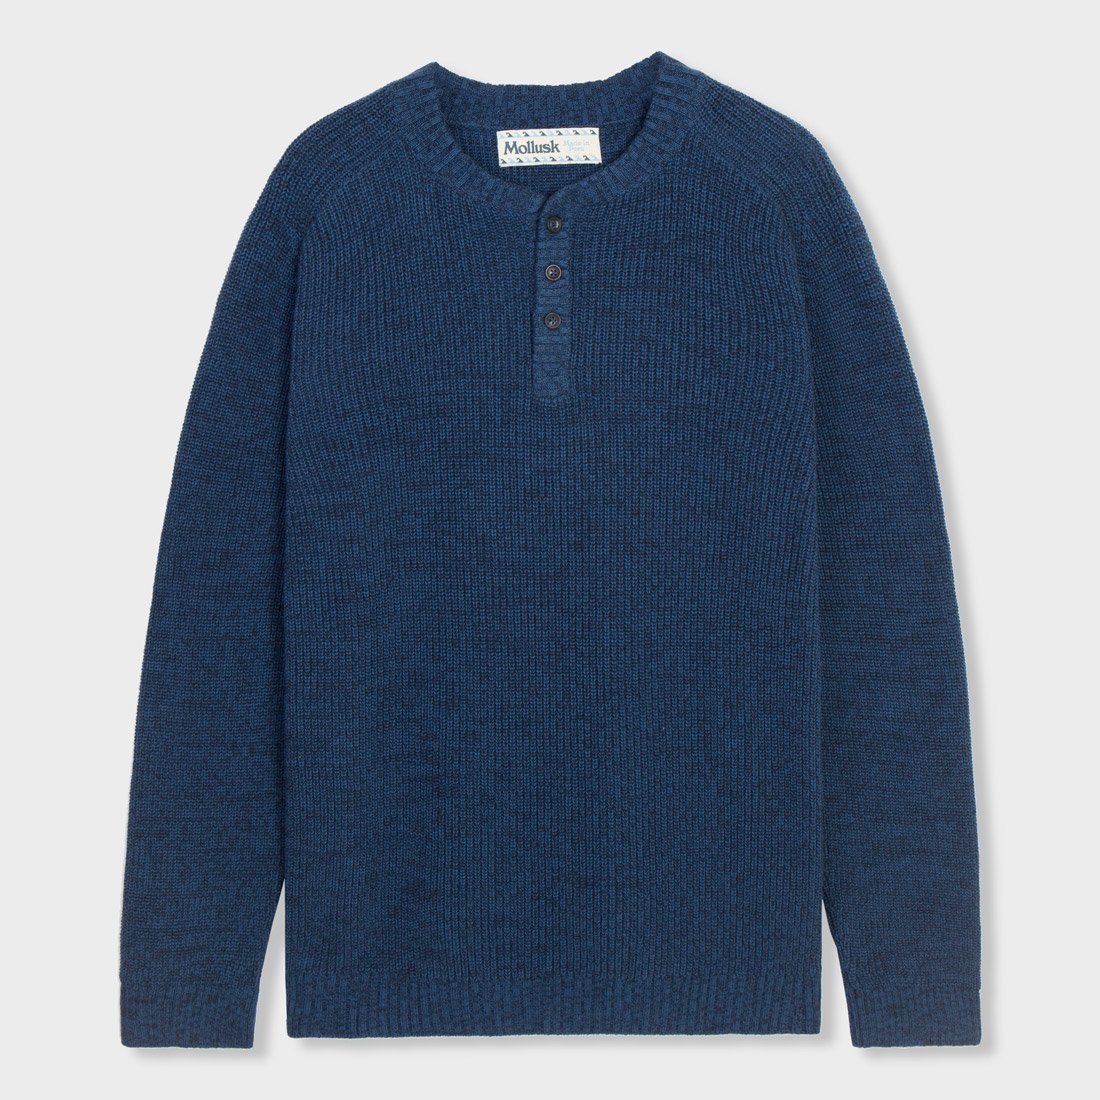 Mollusk Andover Sweater Navy